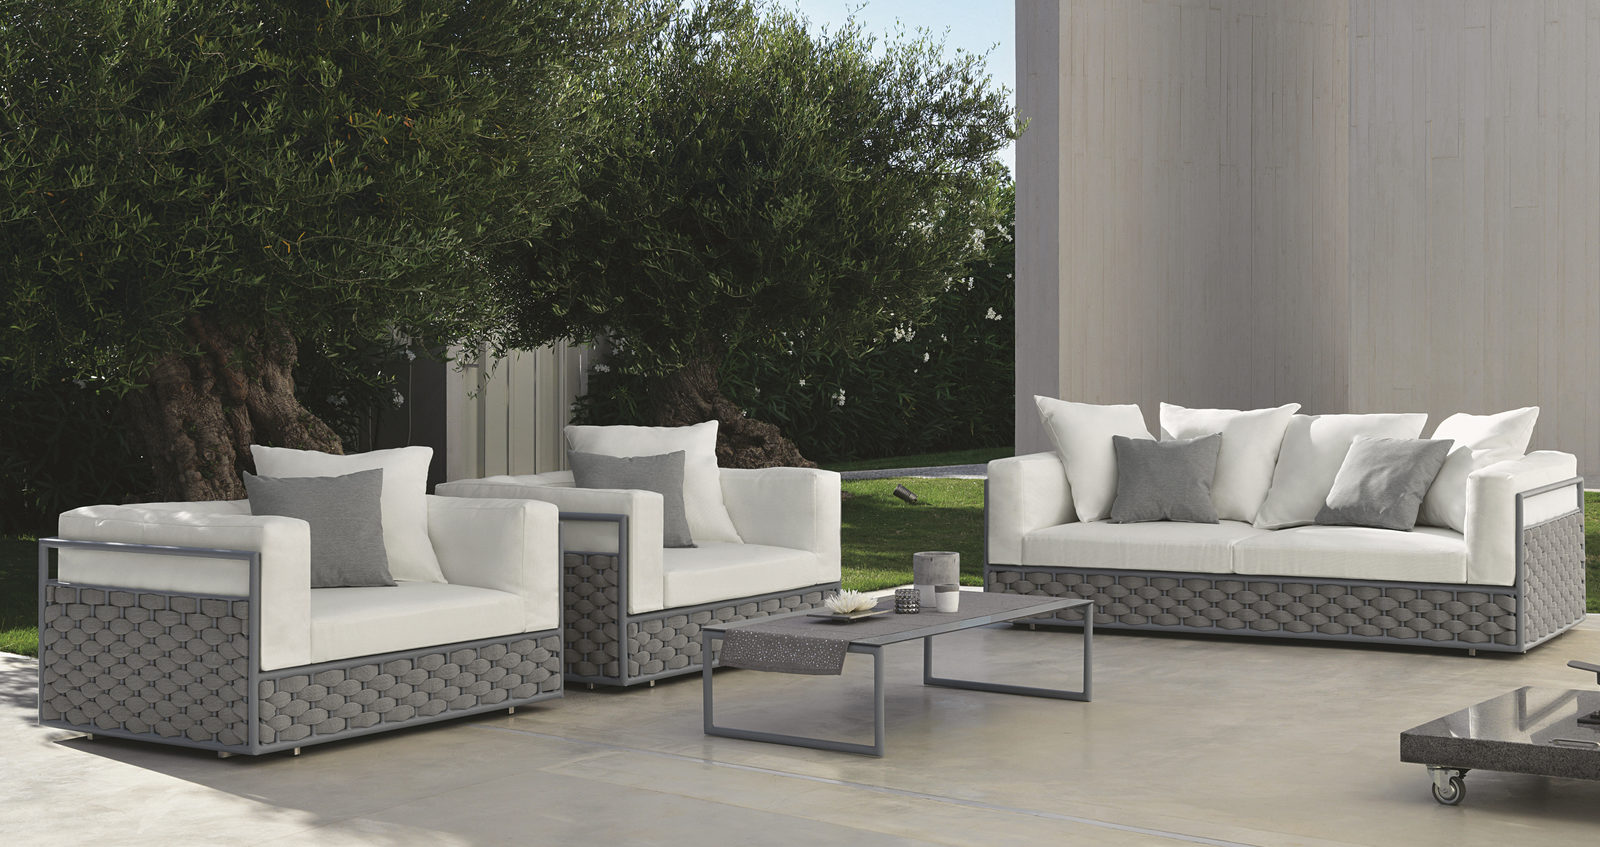 luxe 2 seat sofa slipcover frame plans free dove and 3 seater couture outdoor